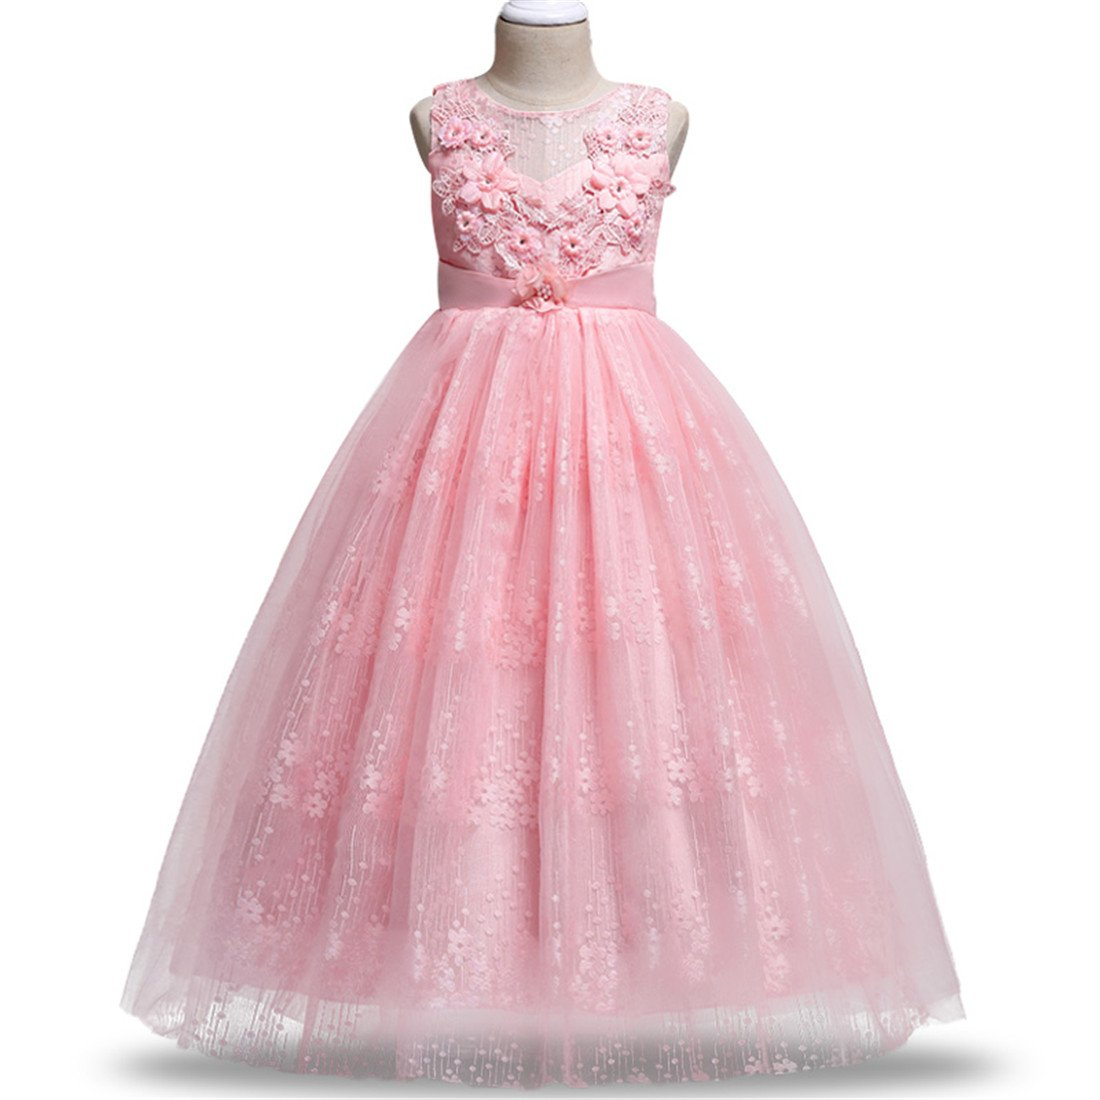 Big Girl Dresses 12-14 Special Occasion Ball Gowns Wedding Pageant ...